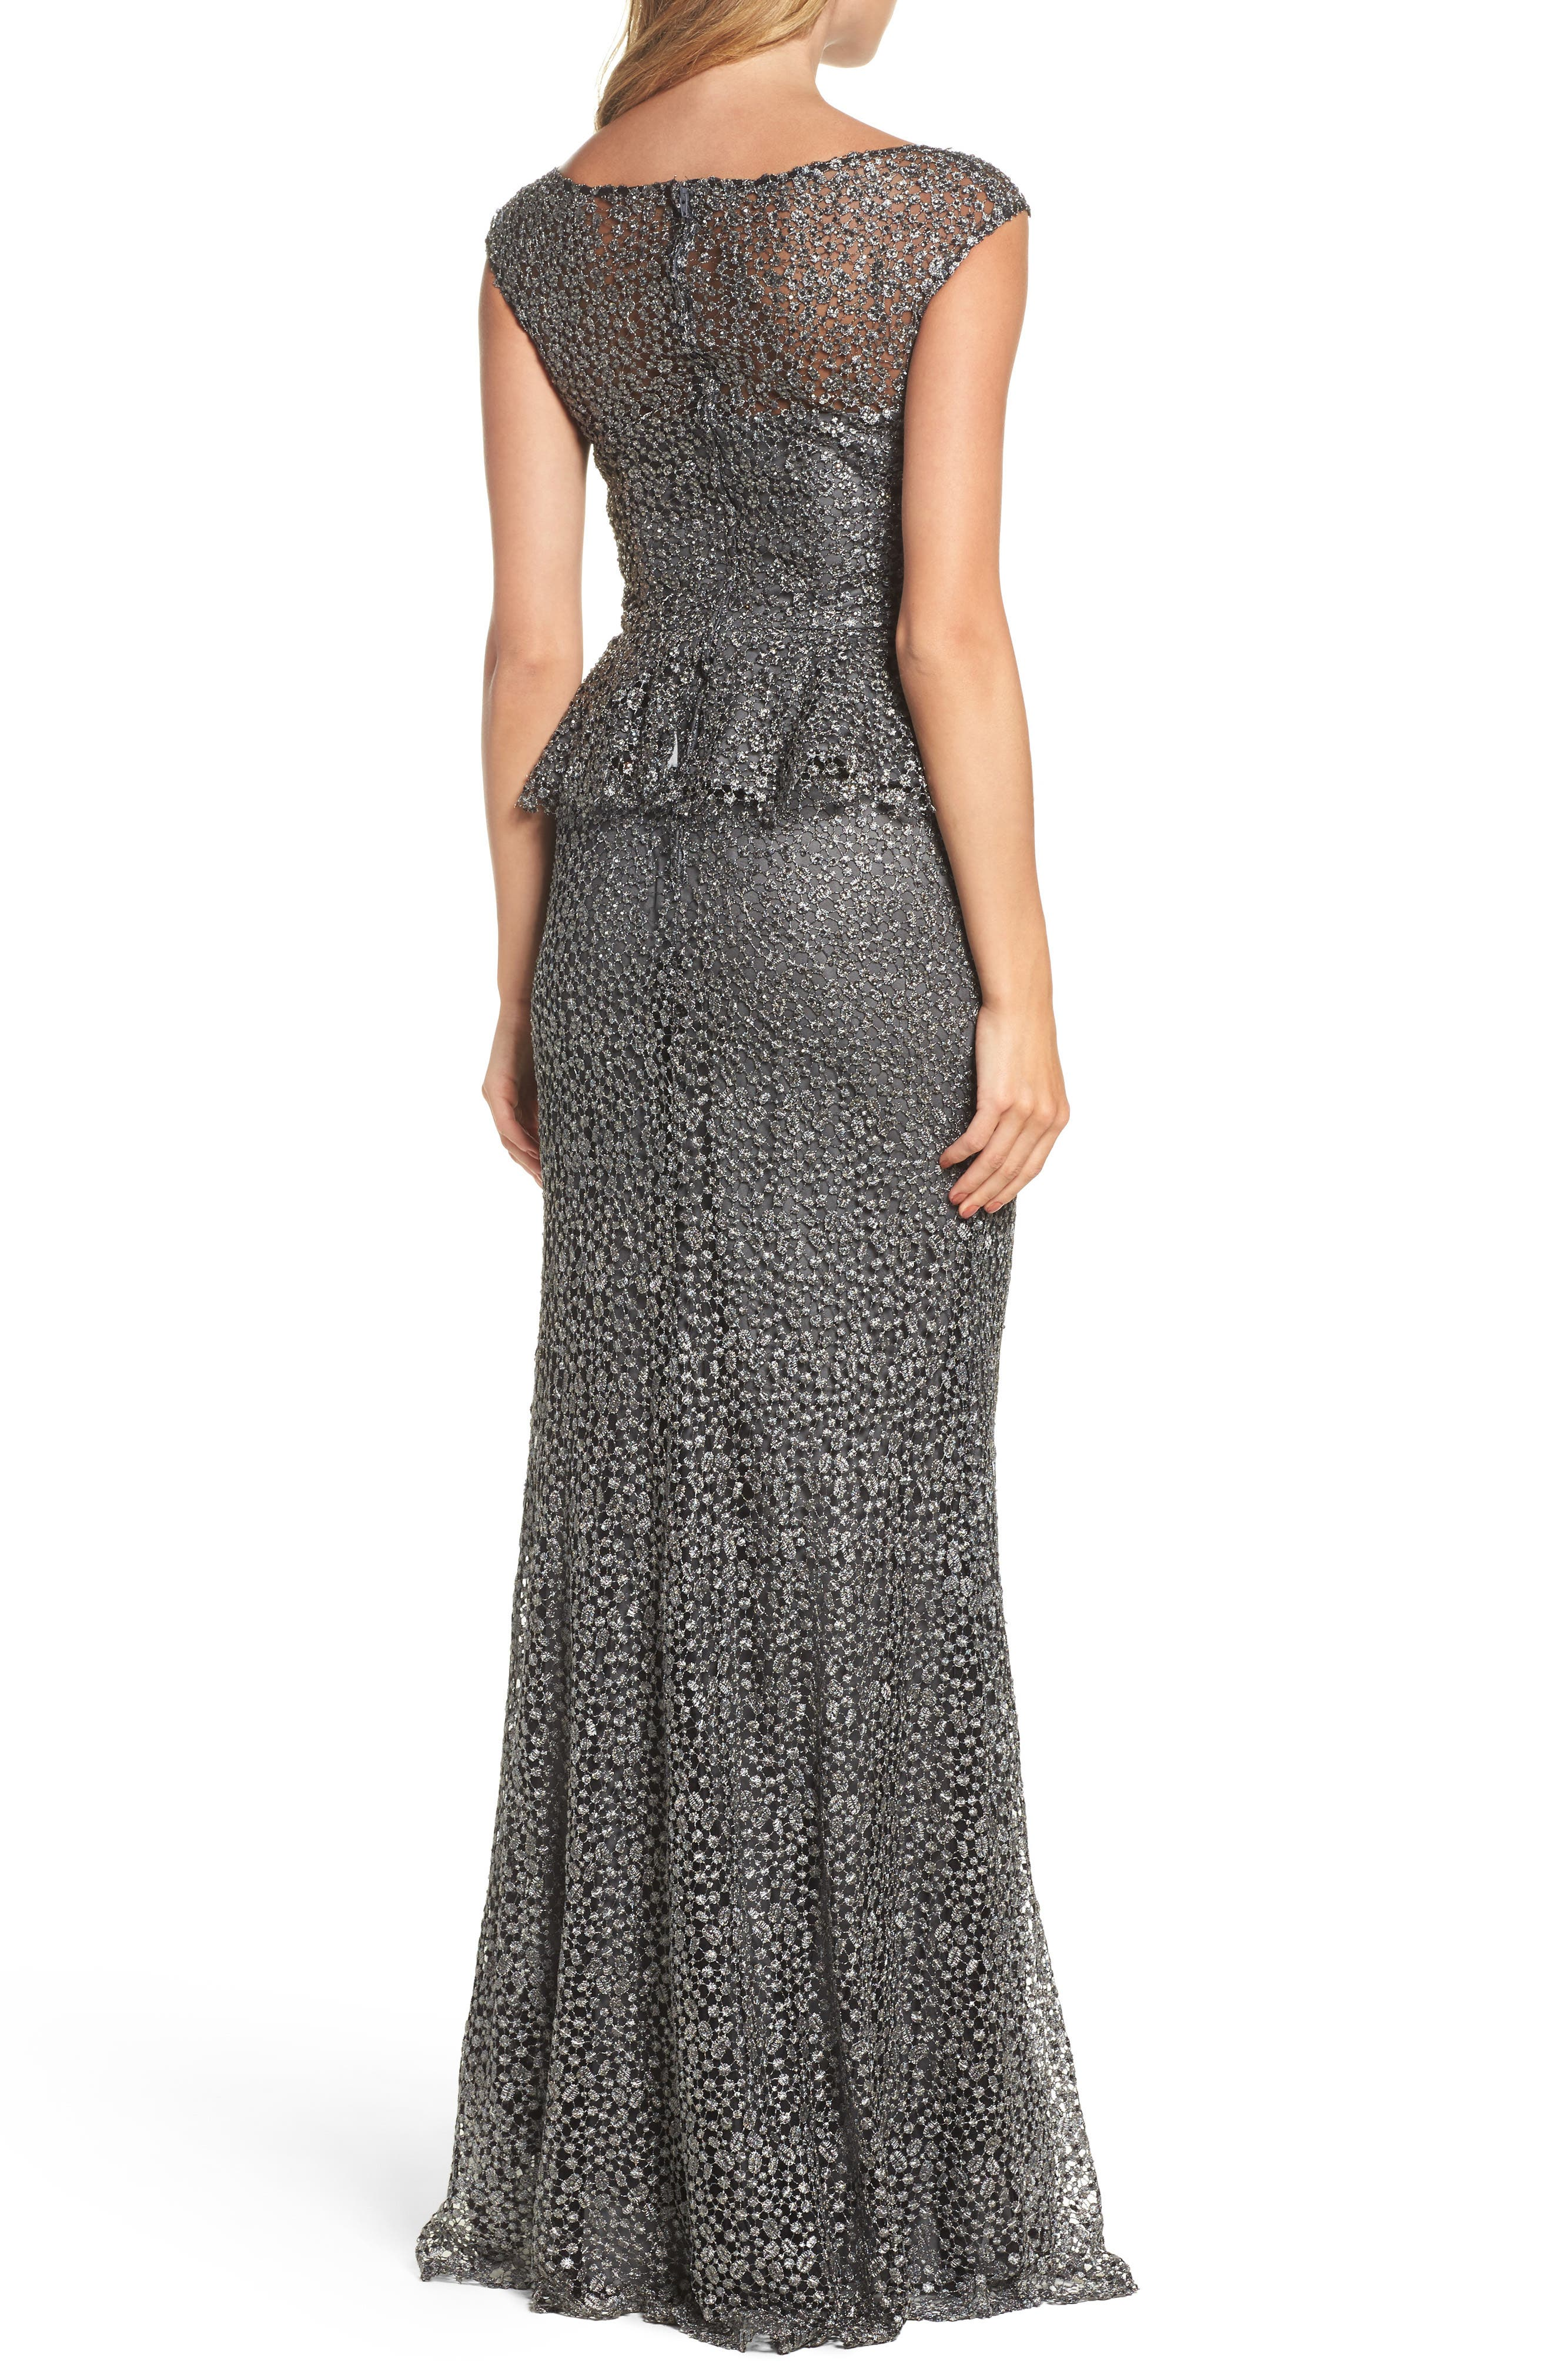 Embellished Lace Peplum Gown,                             Alternate thumbnail 2, color,                             GUNMETAL